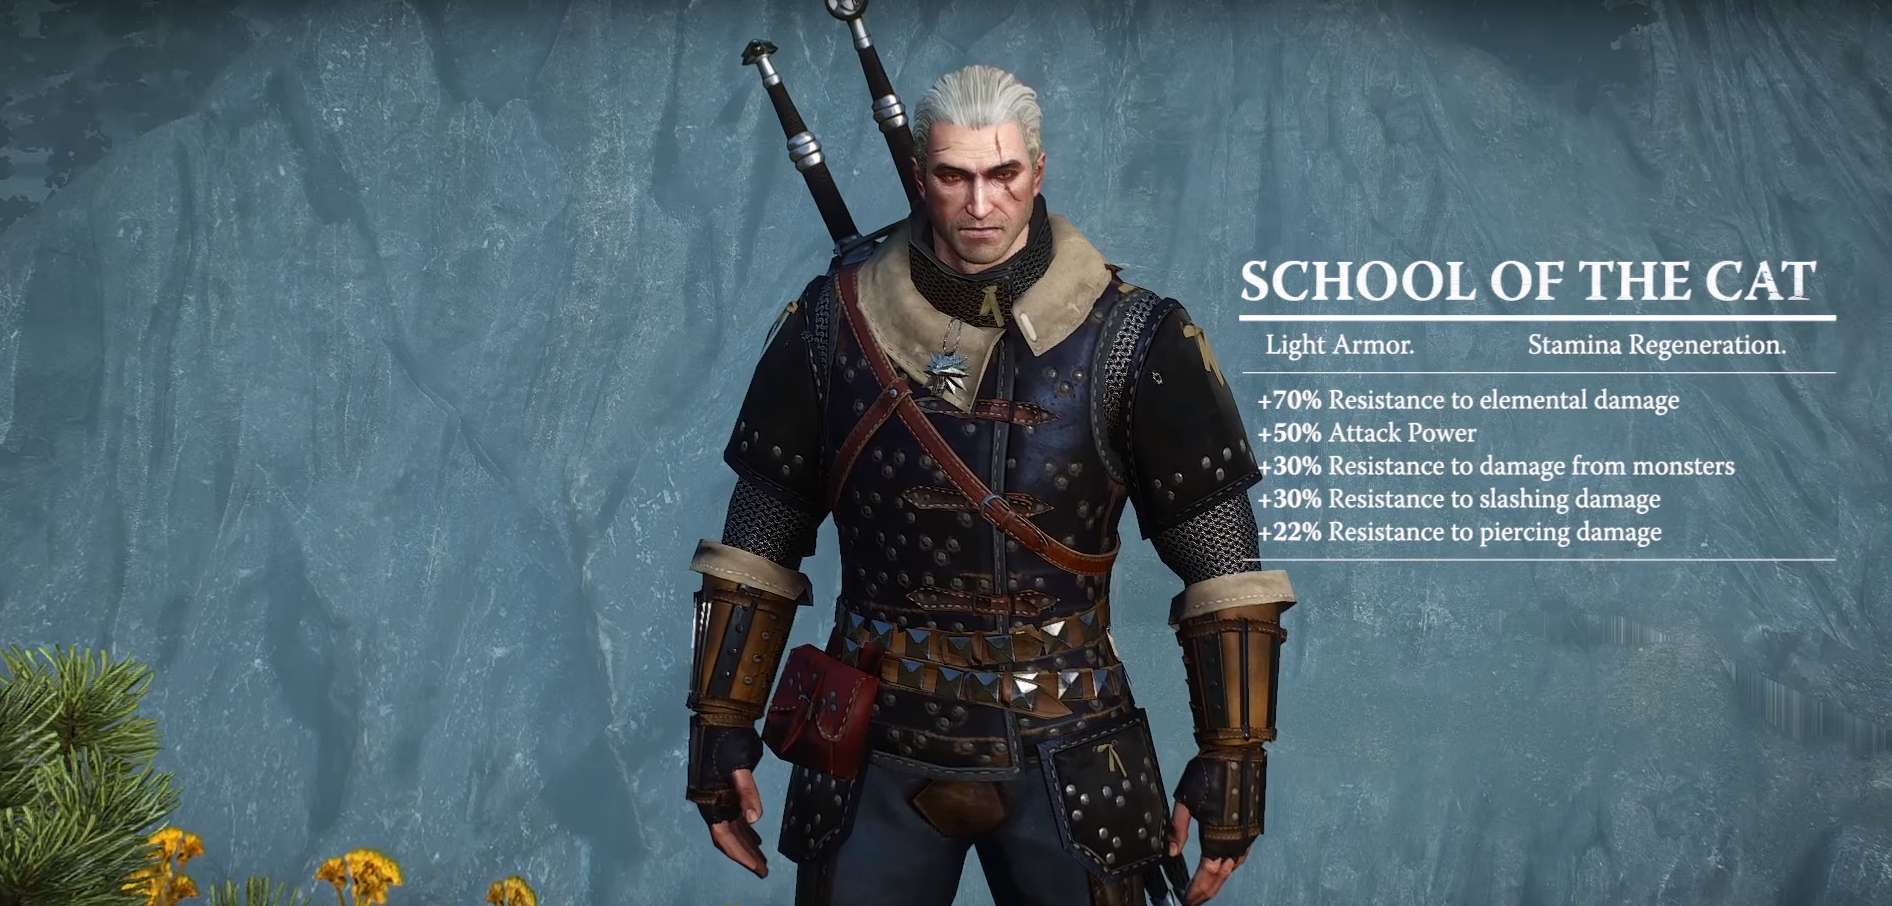 witcher 3 cat school gear